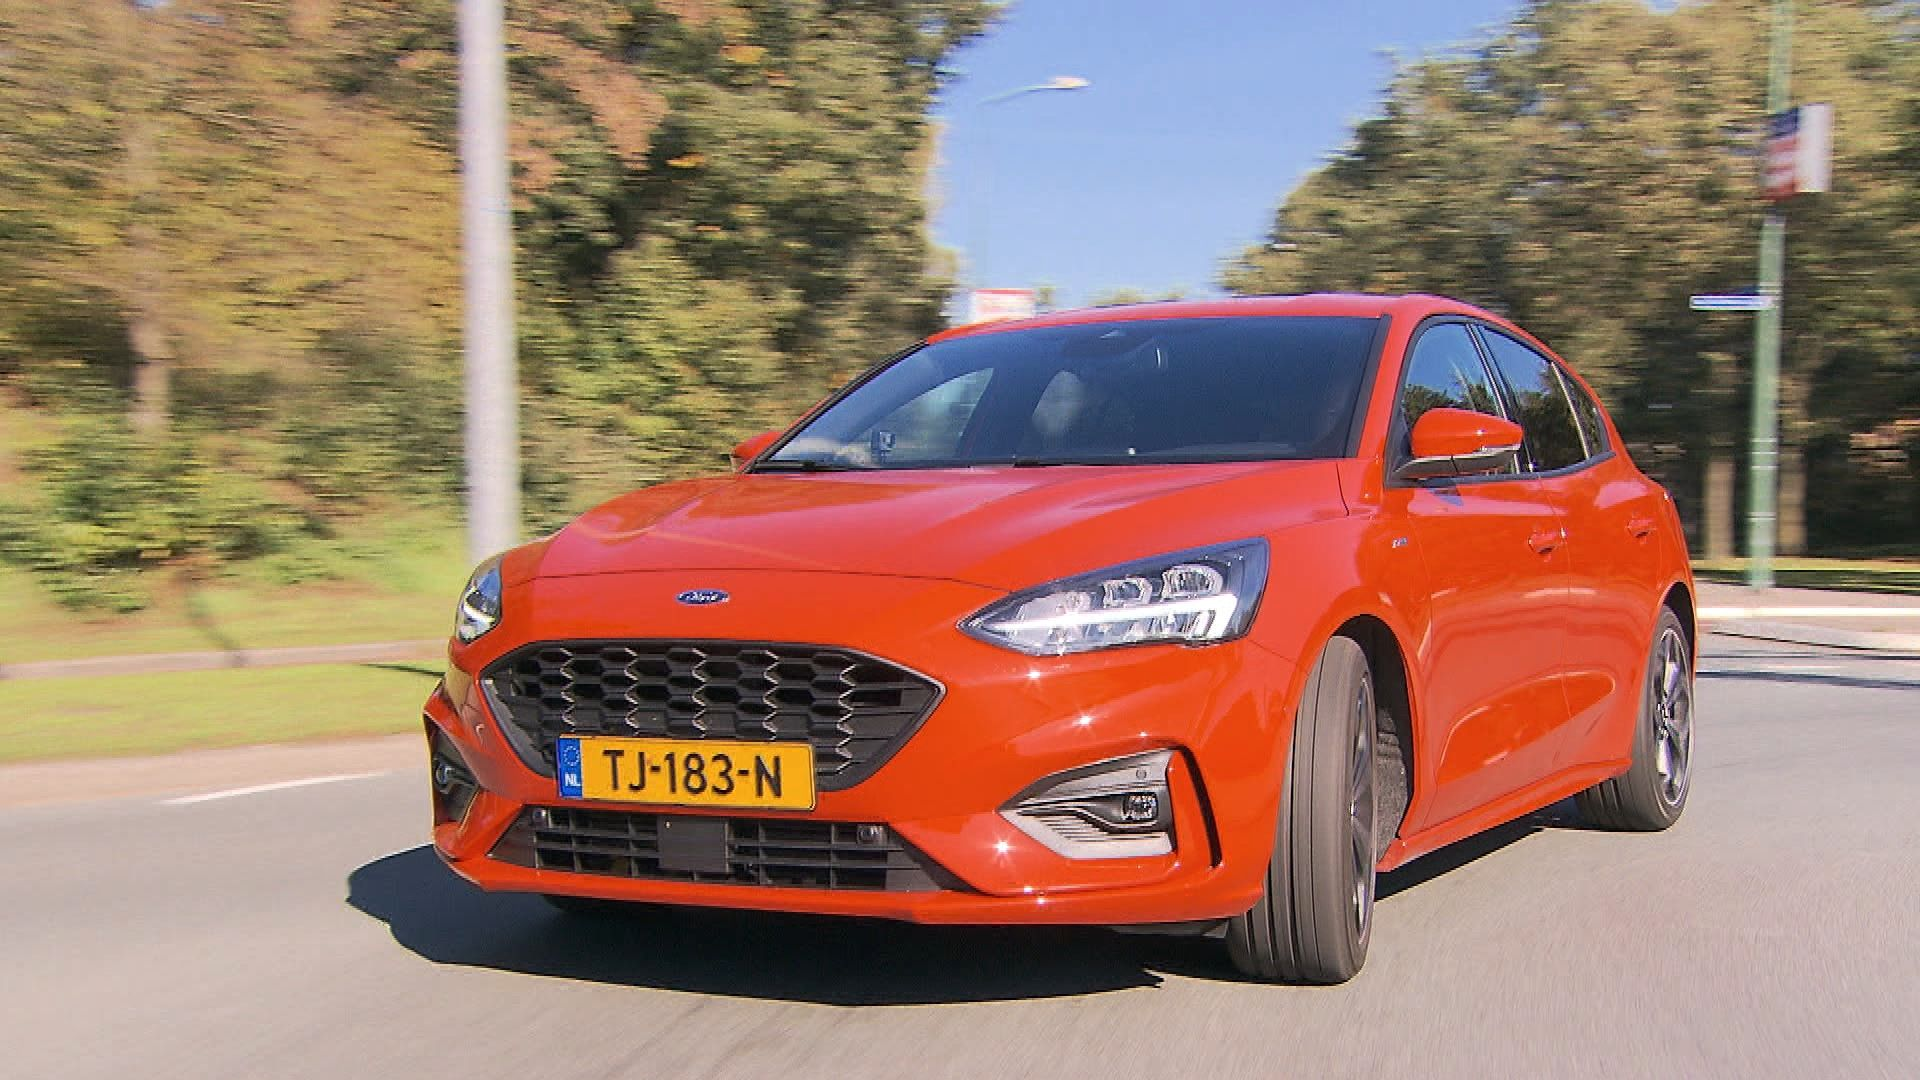 Ford Focus St Line 2019 1 0 Eco Boost Met Tom Coronel Ford Focus Ford Auto